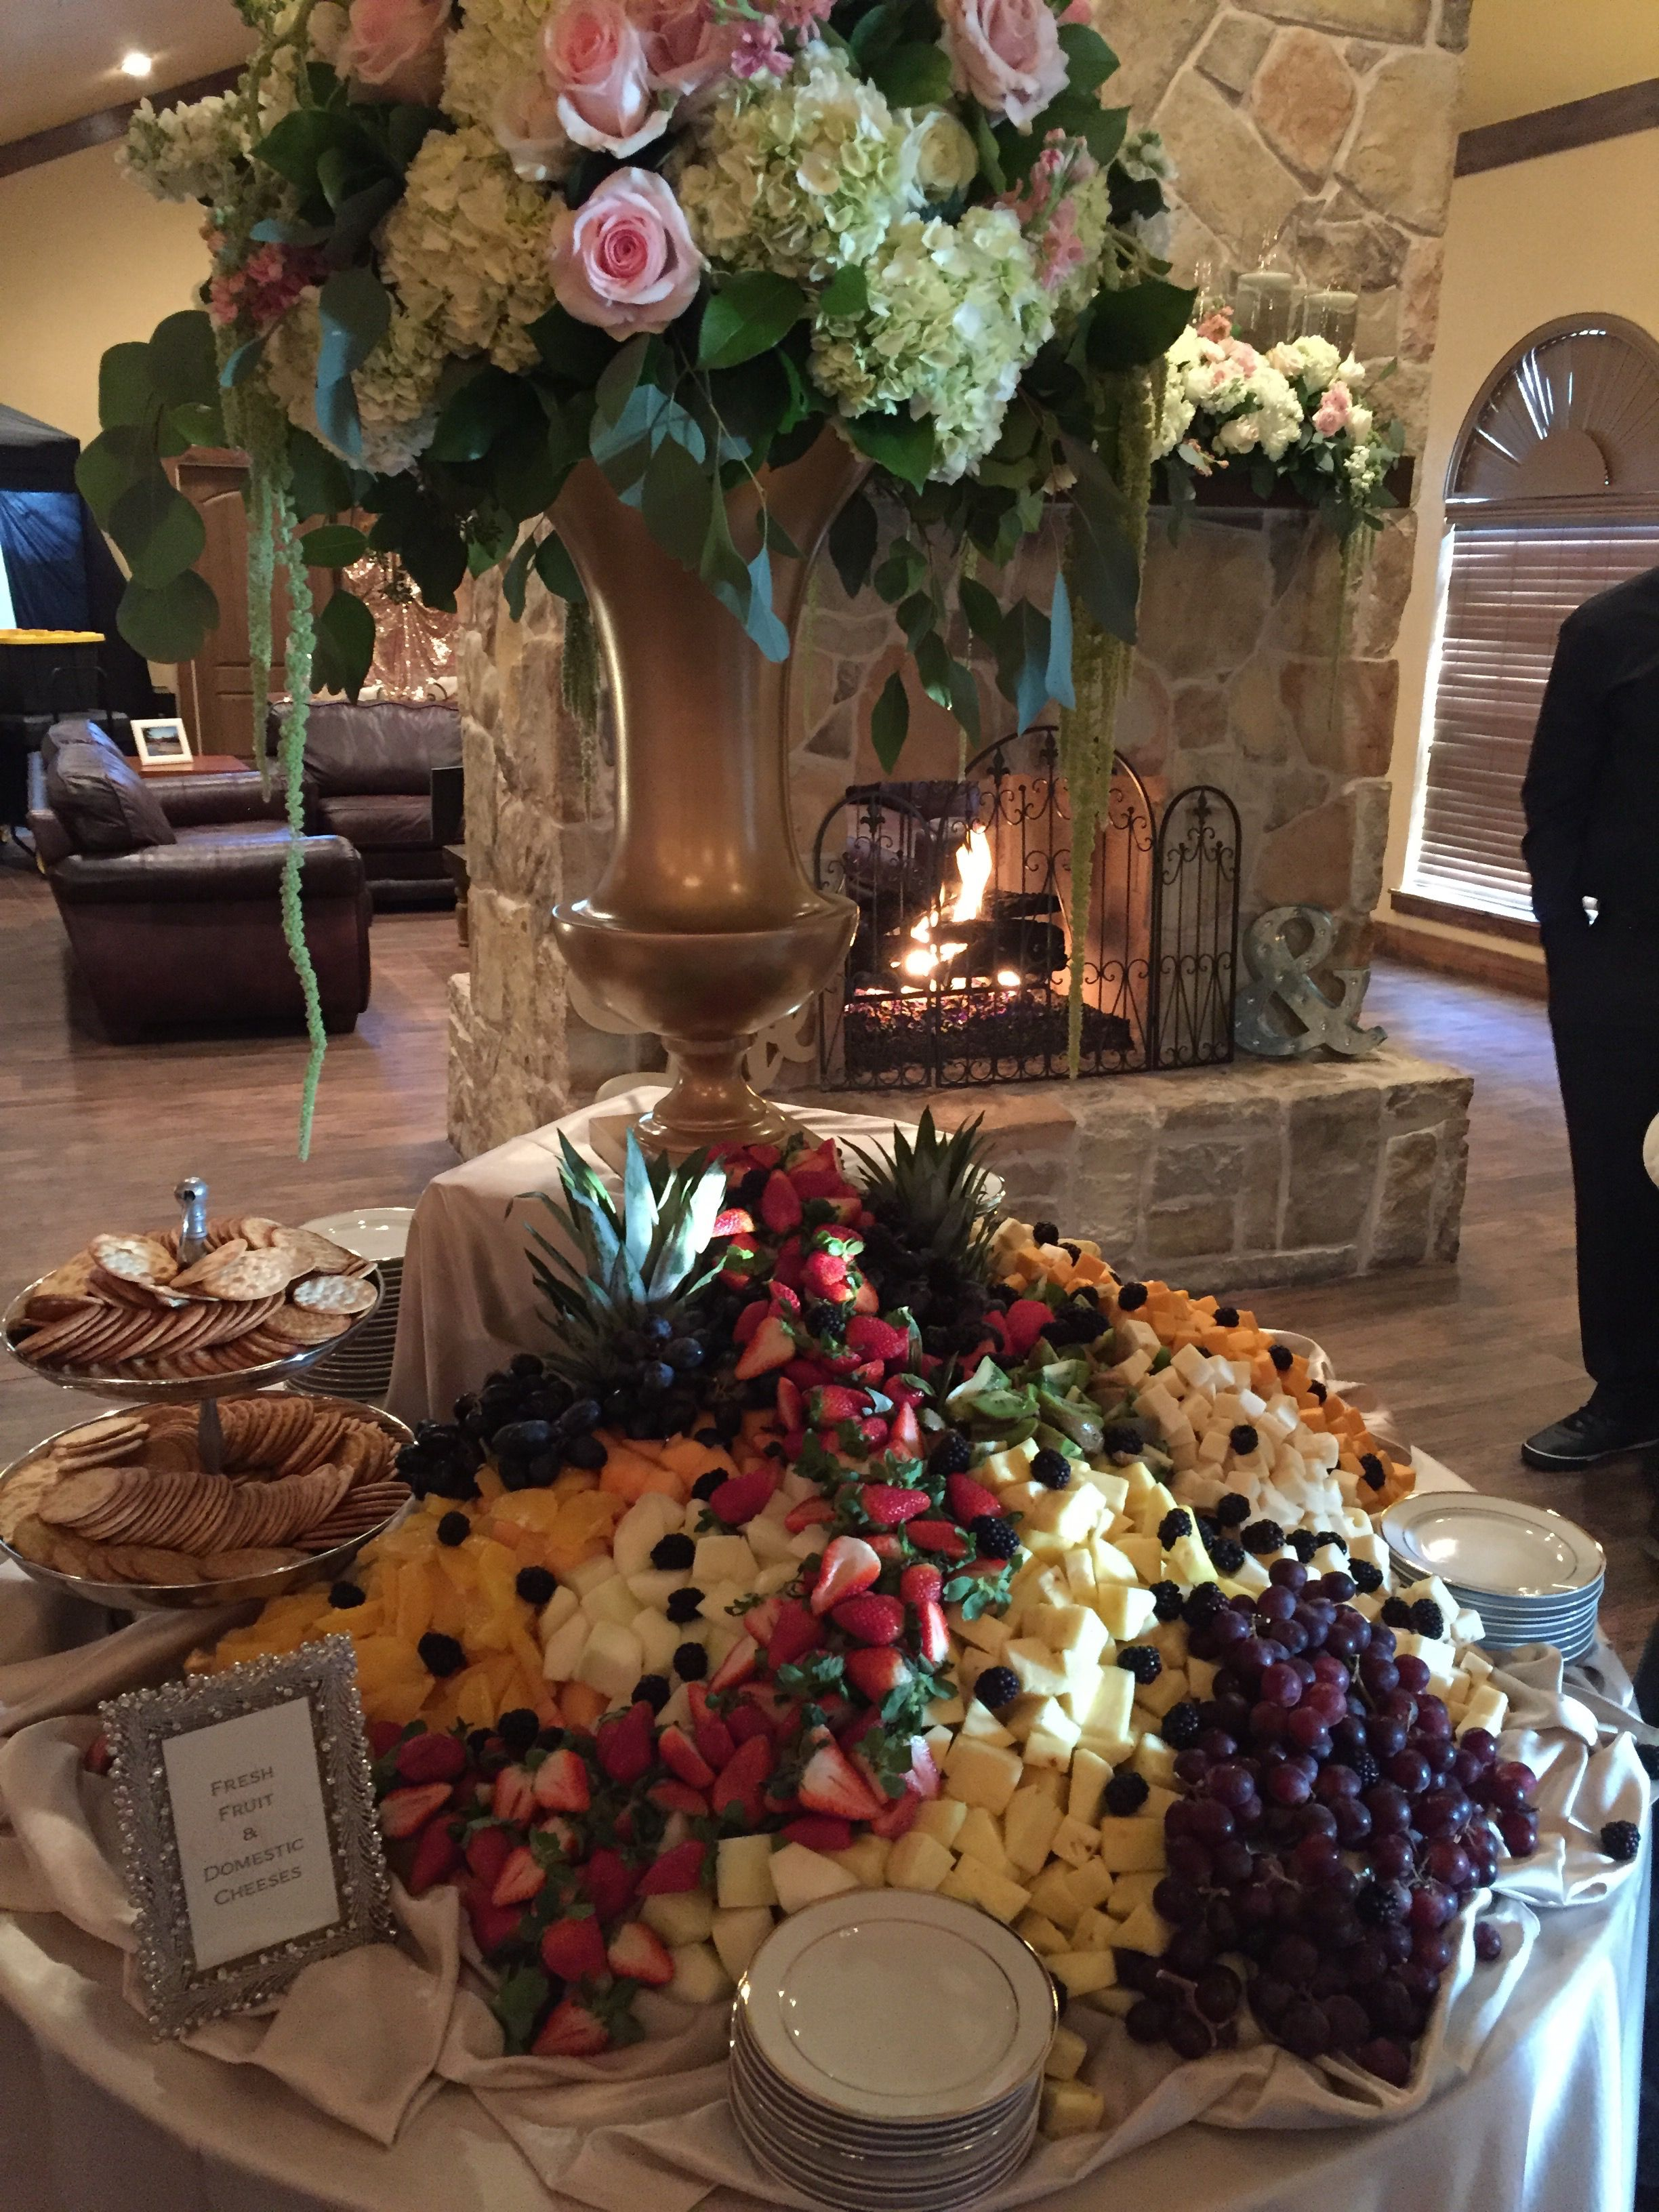 Catering by Chef Robert Aranson Flowers by A Wedding u Party